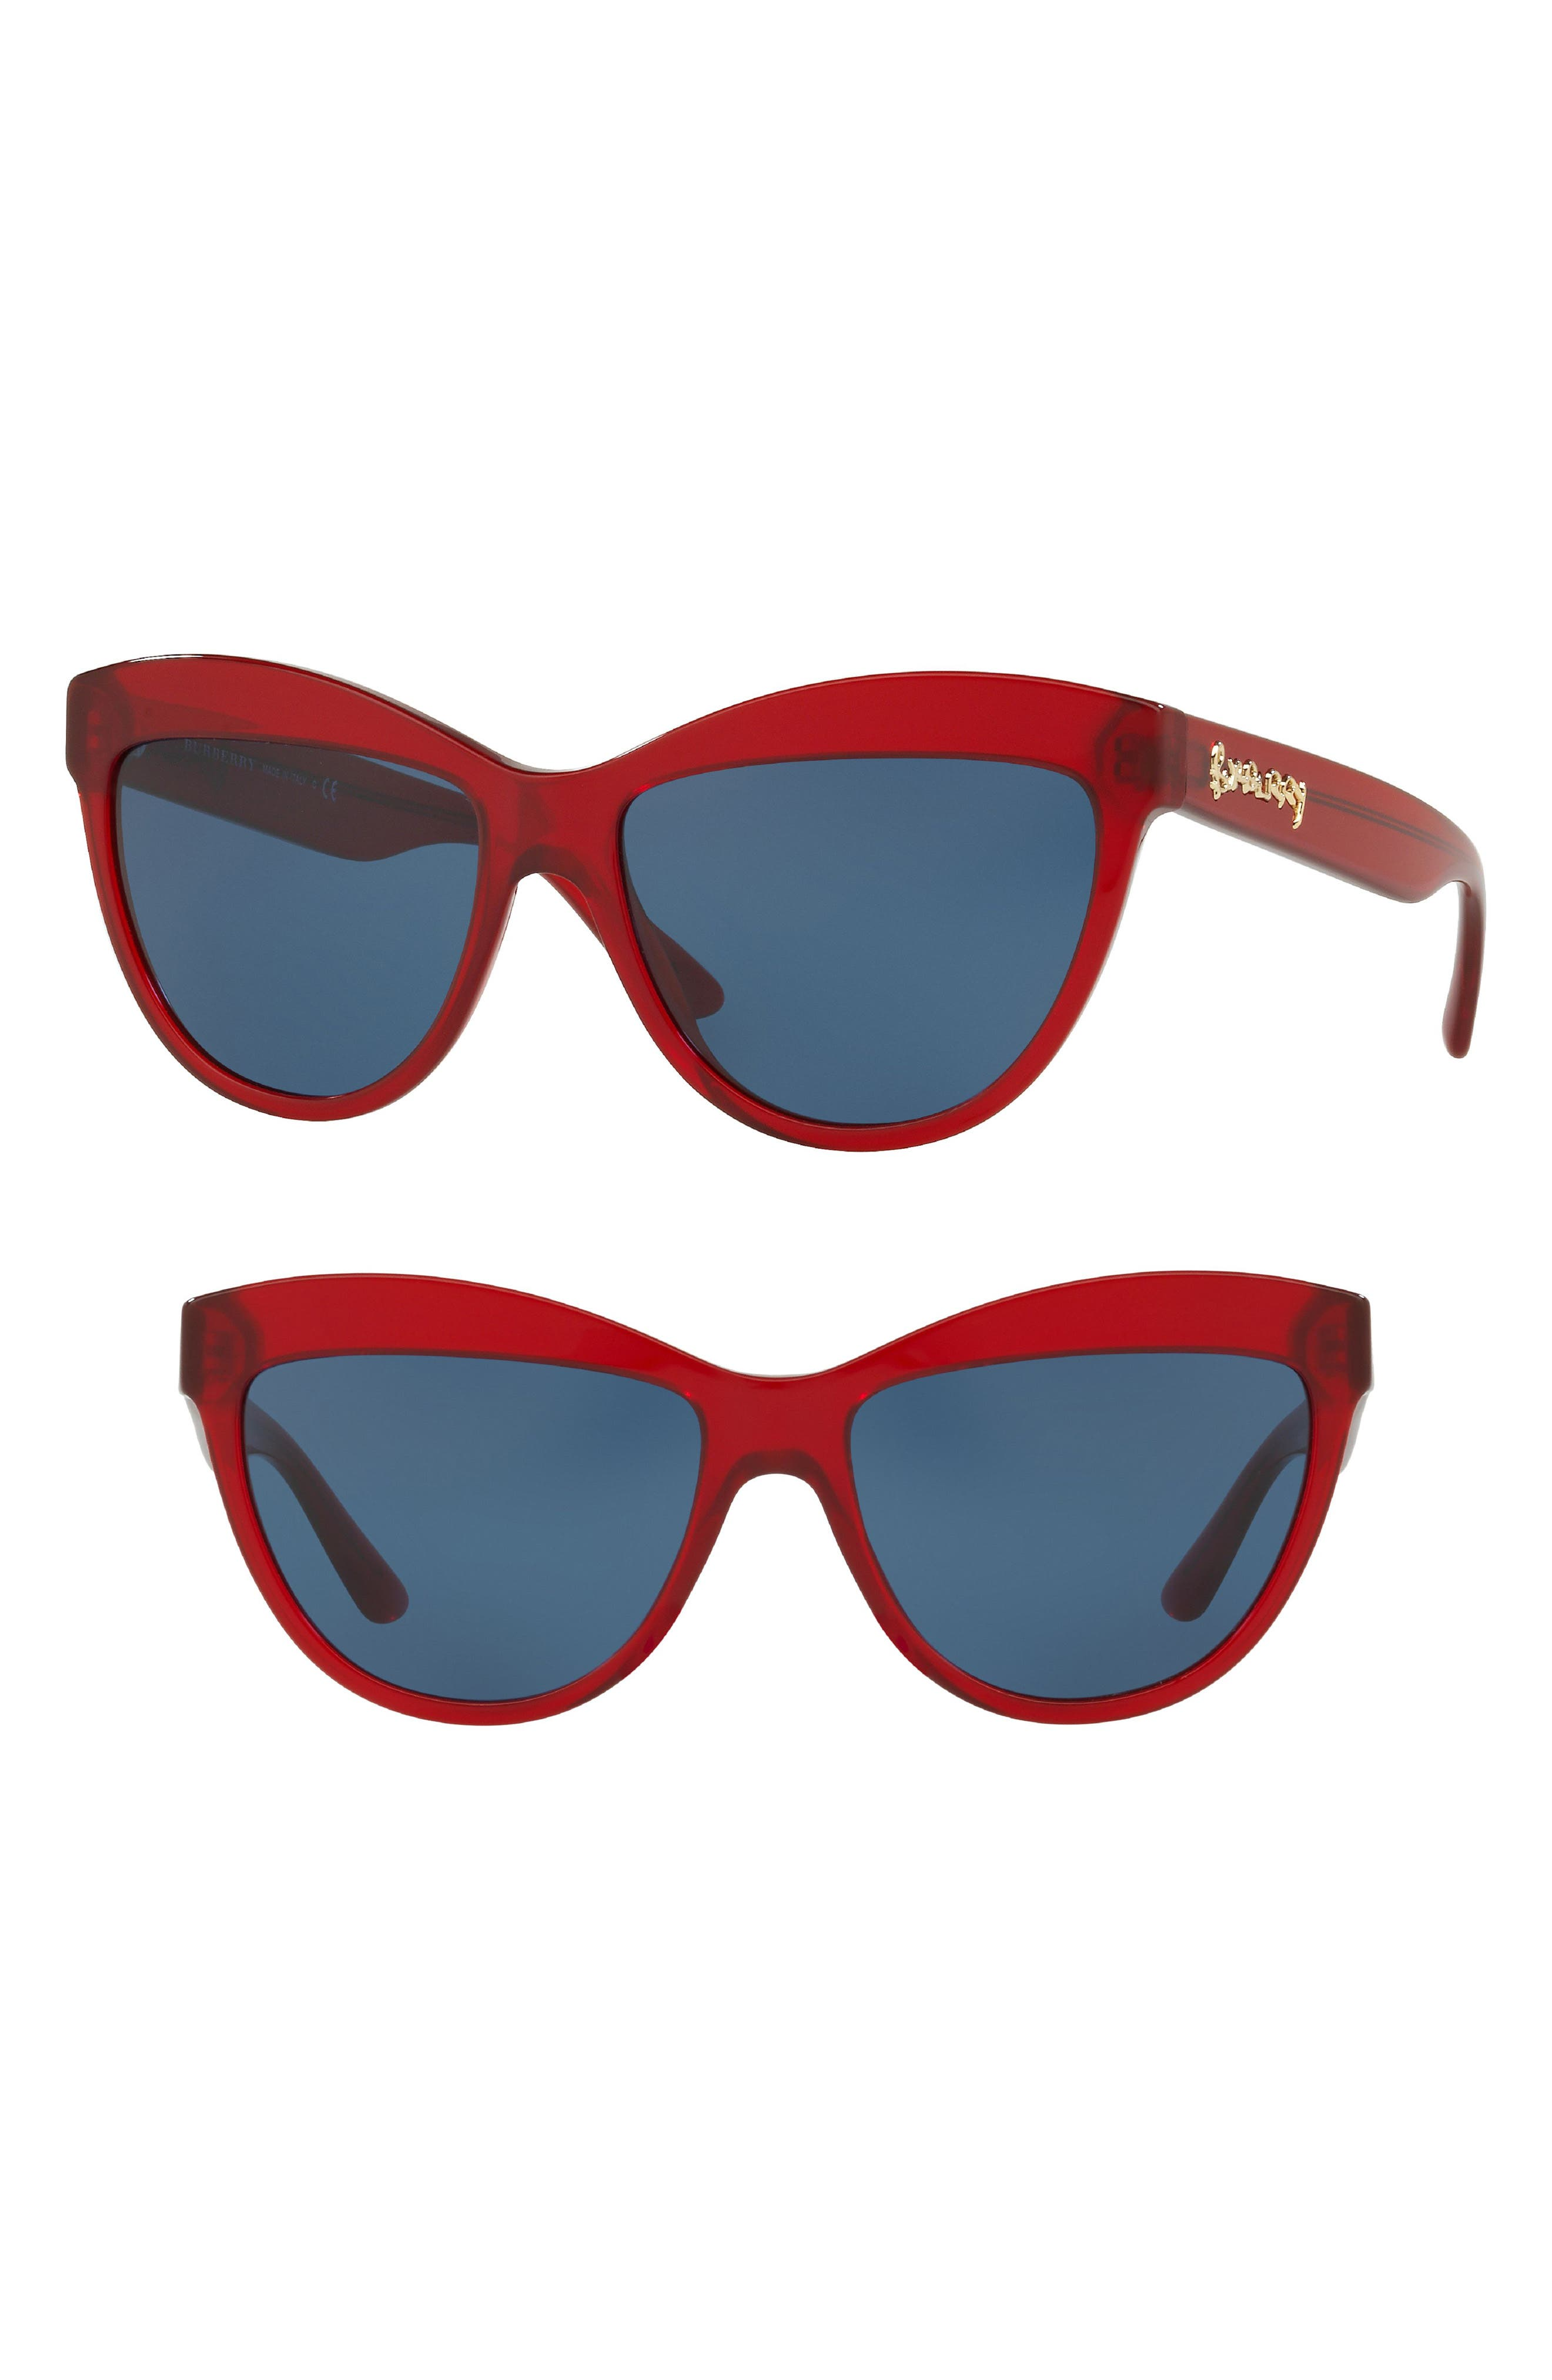 Acoustic 56mm Cat Eye Sunglasses,                             Main thumbnail 1, color,                             Burgundy Solid